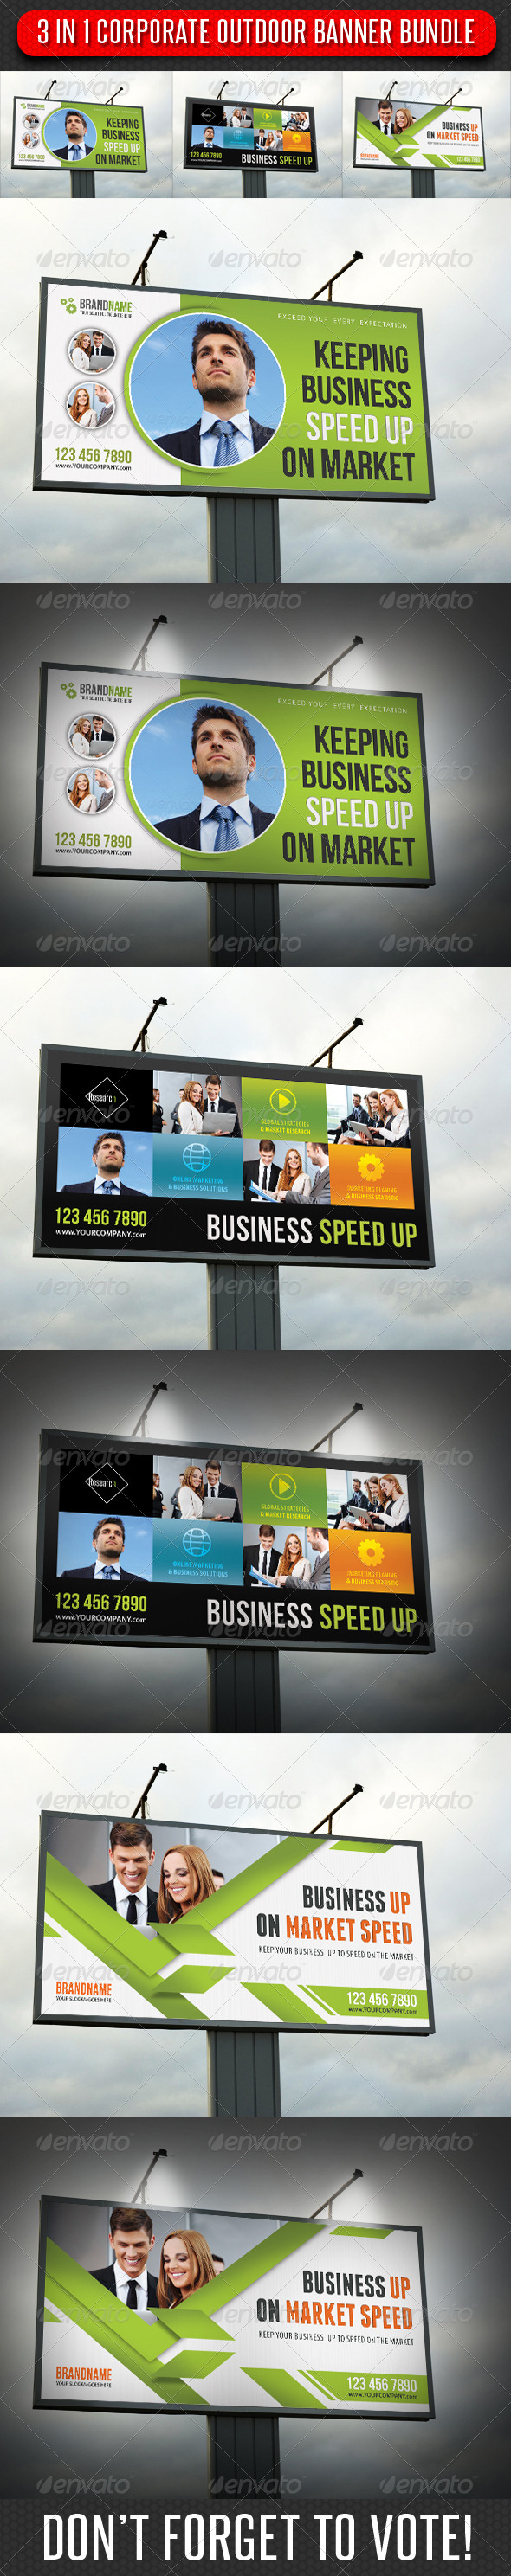 3 in 1 Corporate Outdoor Banner Bundle 08 - Signage Print Templates